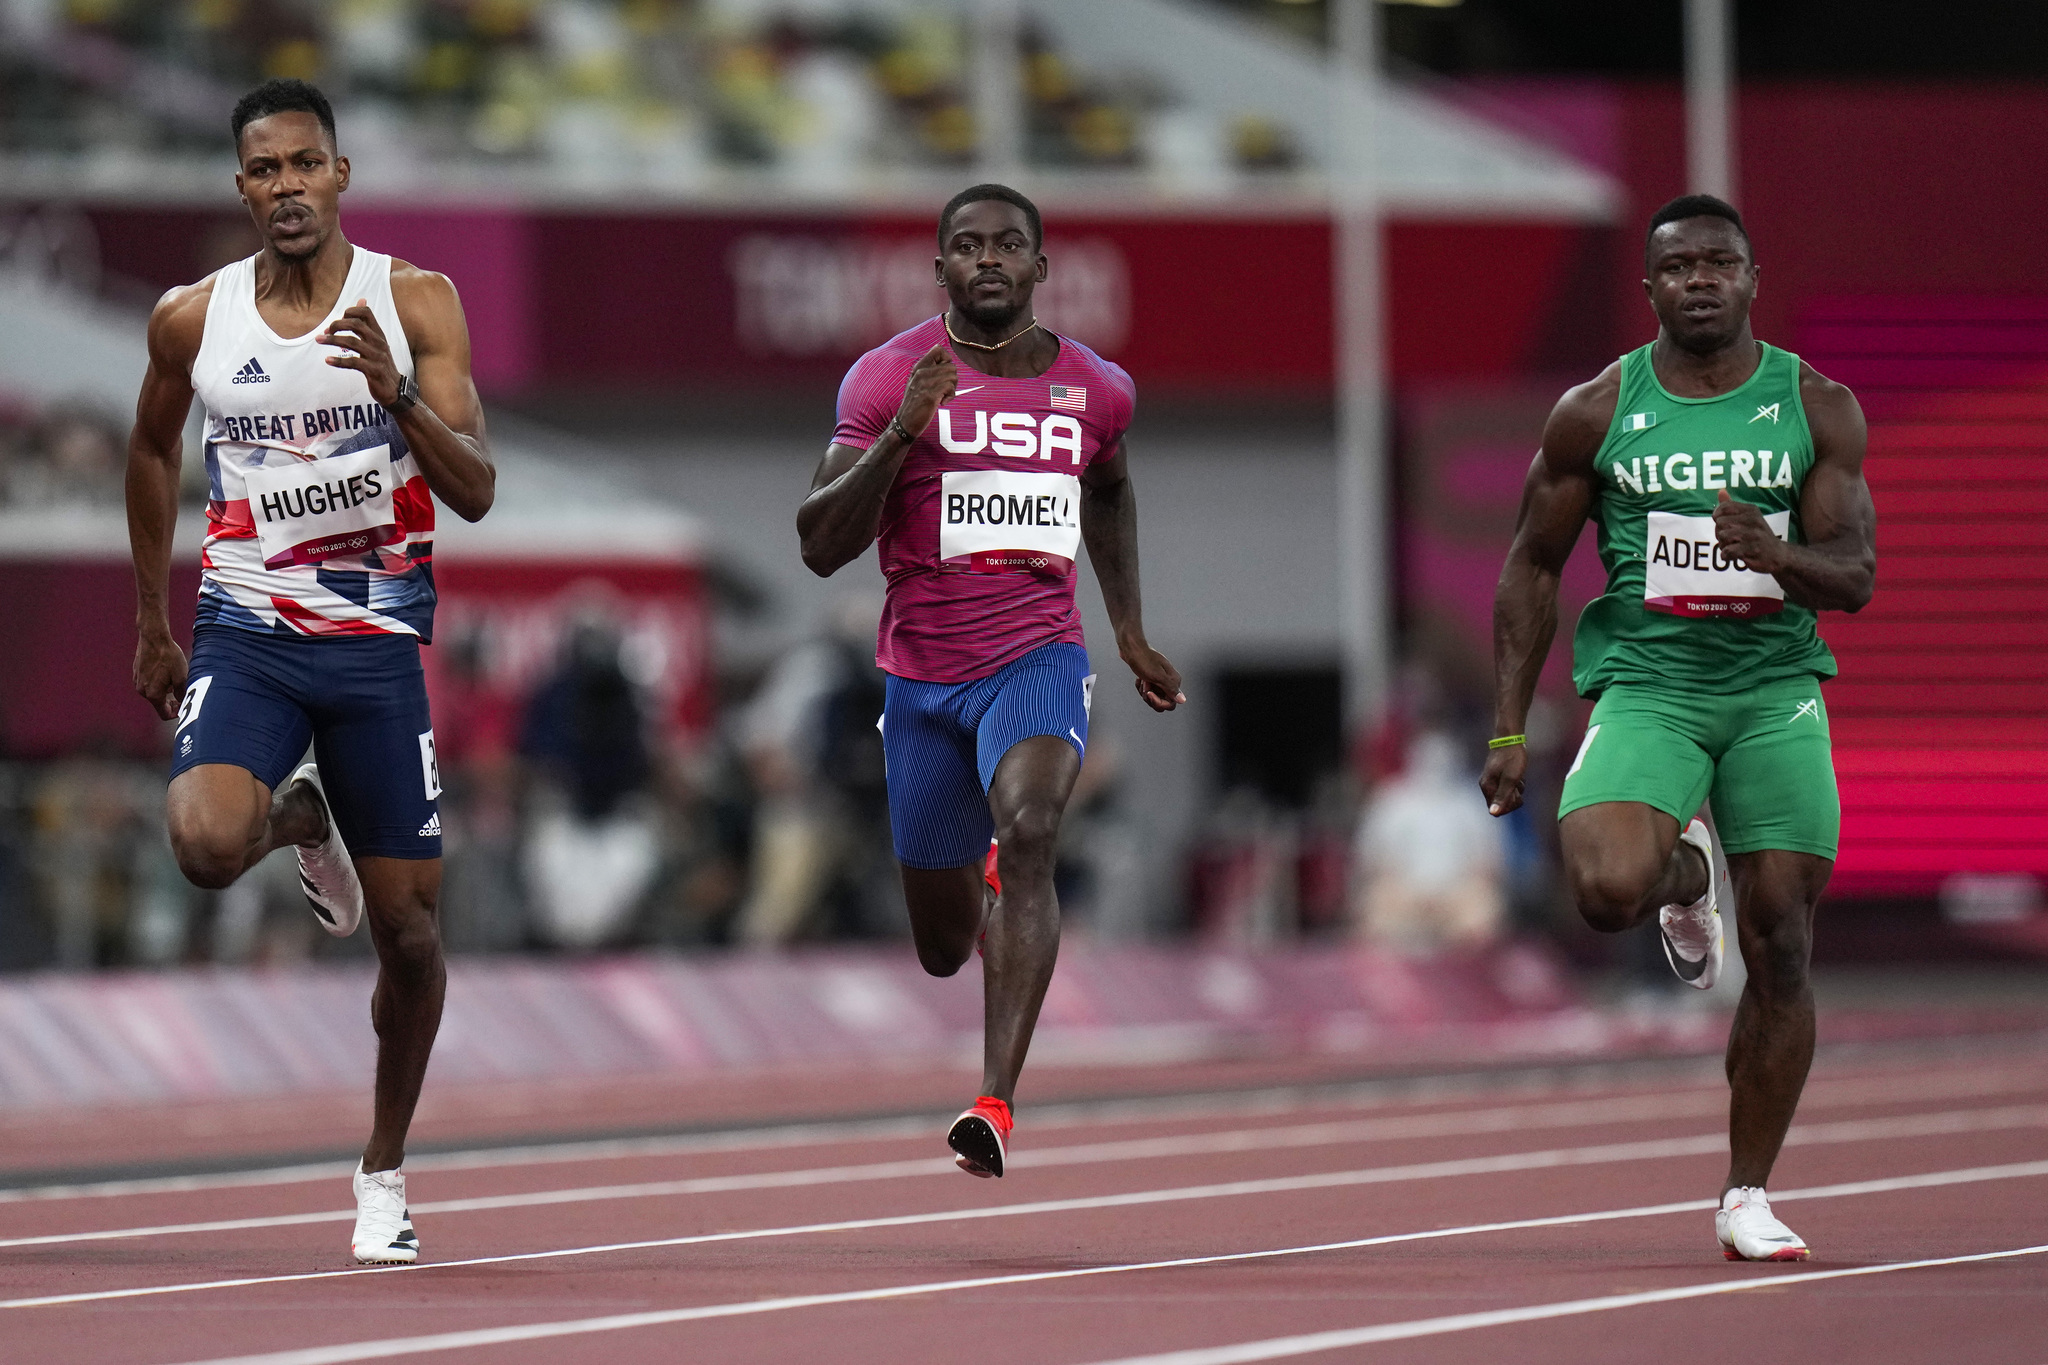 USA star Trayvon Bromell in the men's 100m heat at the Tokyo Olympics.